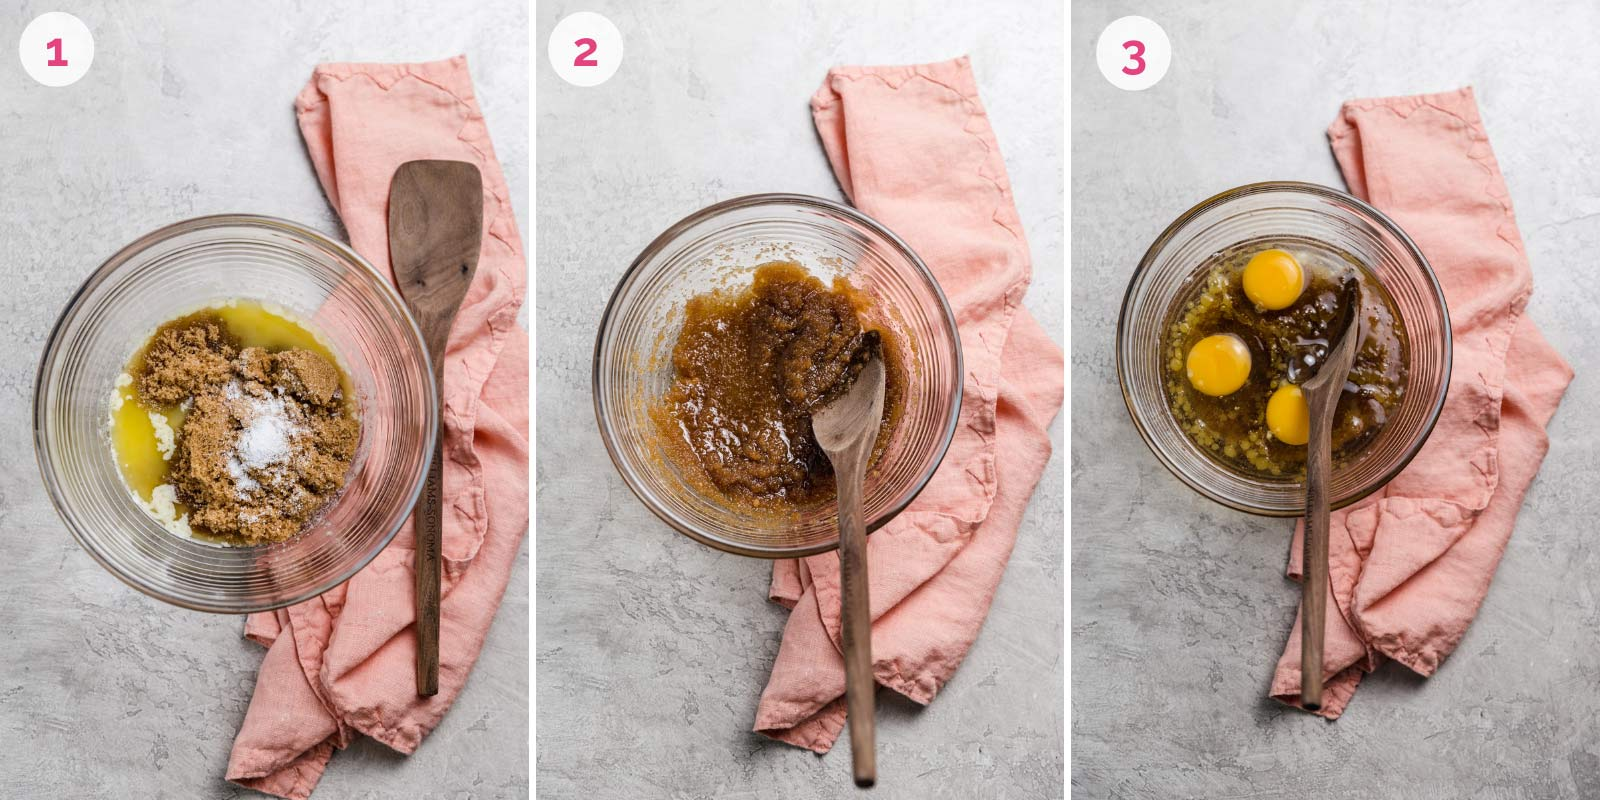 Step by step photos of mixing together pecan pie filling.